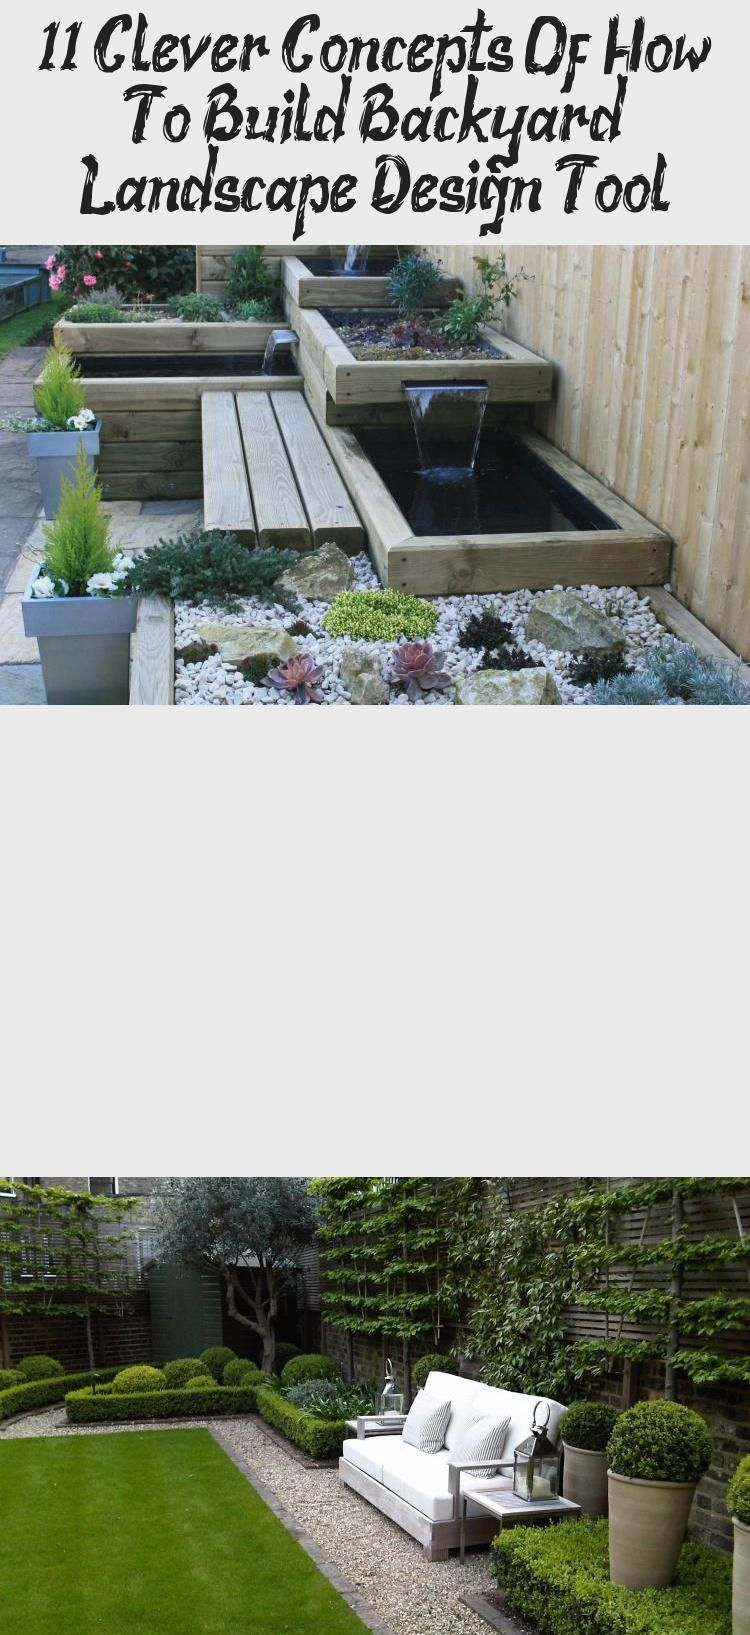 11 Clever Concepts Of How To Build Backyard Landscape Design Tool Homemakeover Smallgardencheap Smallgardenborders Smallgardenpergo Garden Design Software Backyard Landscaping Landscape Design Software